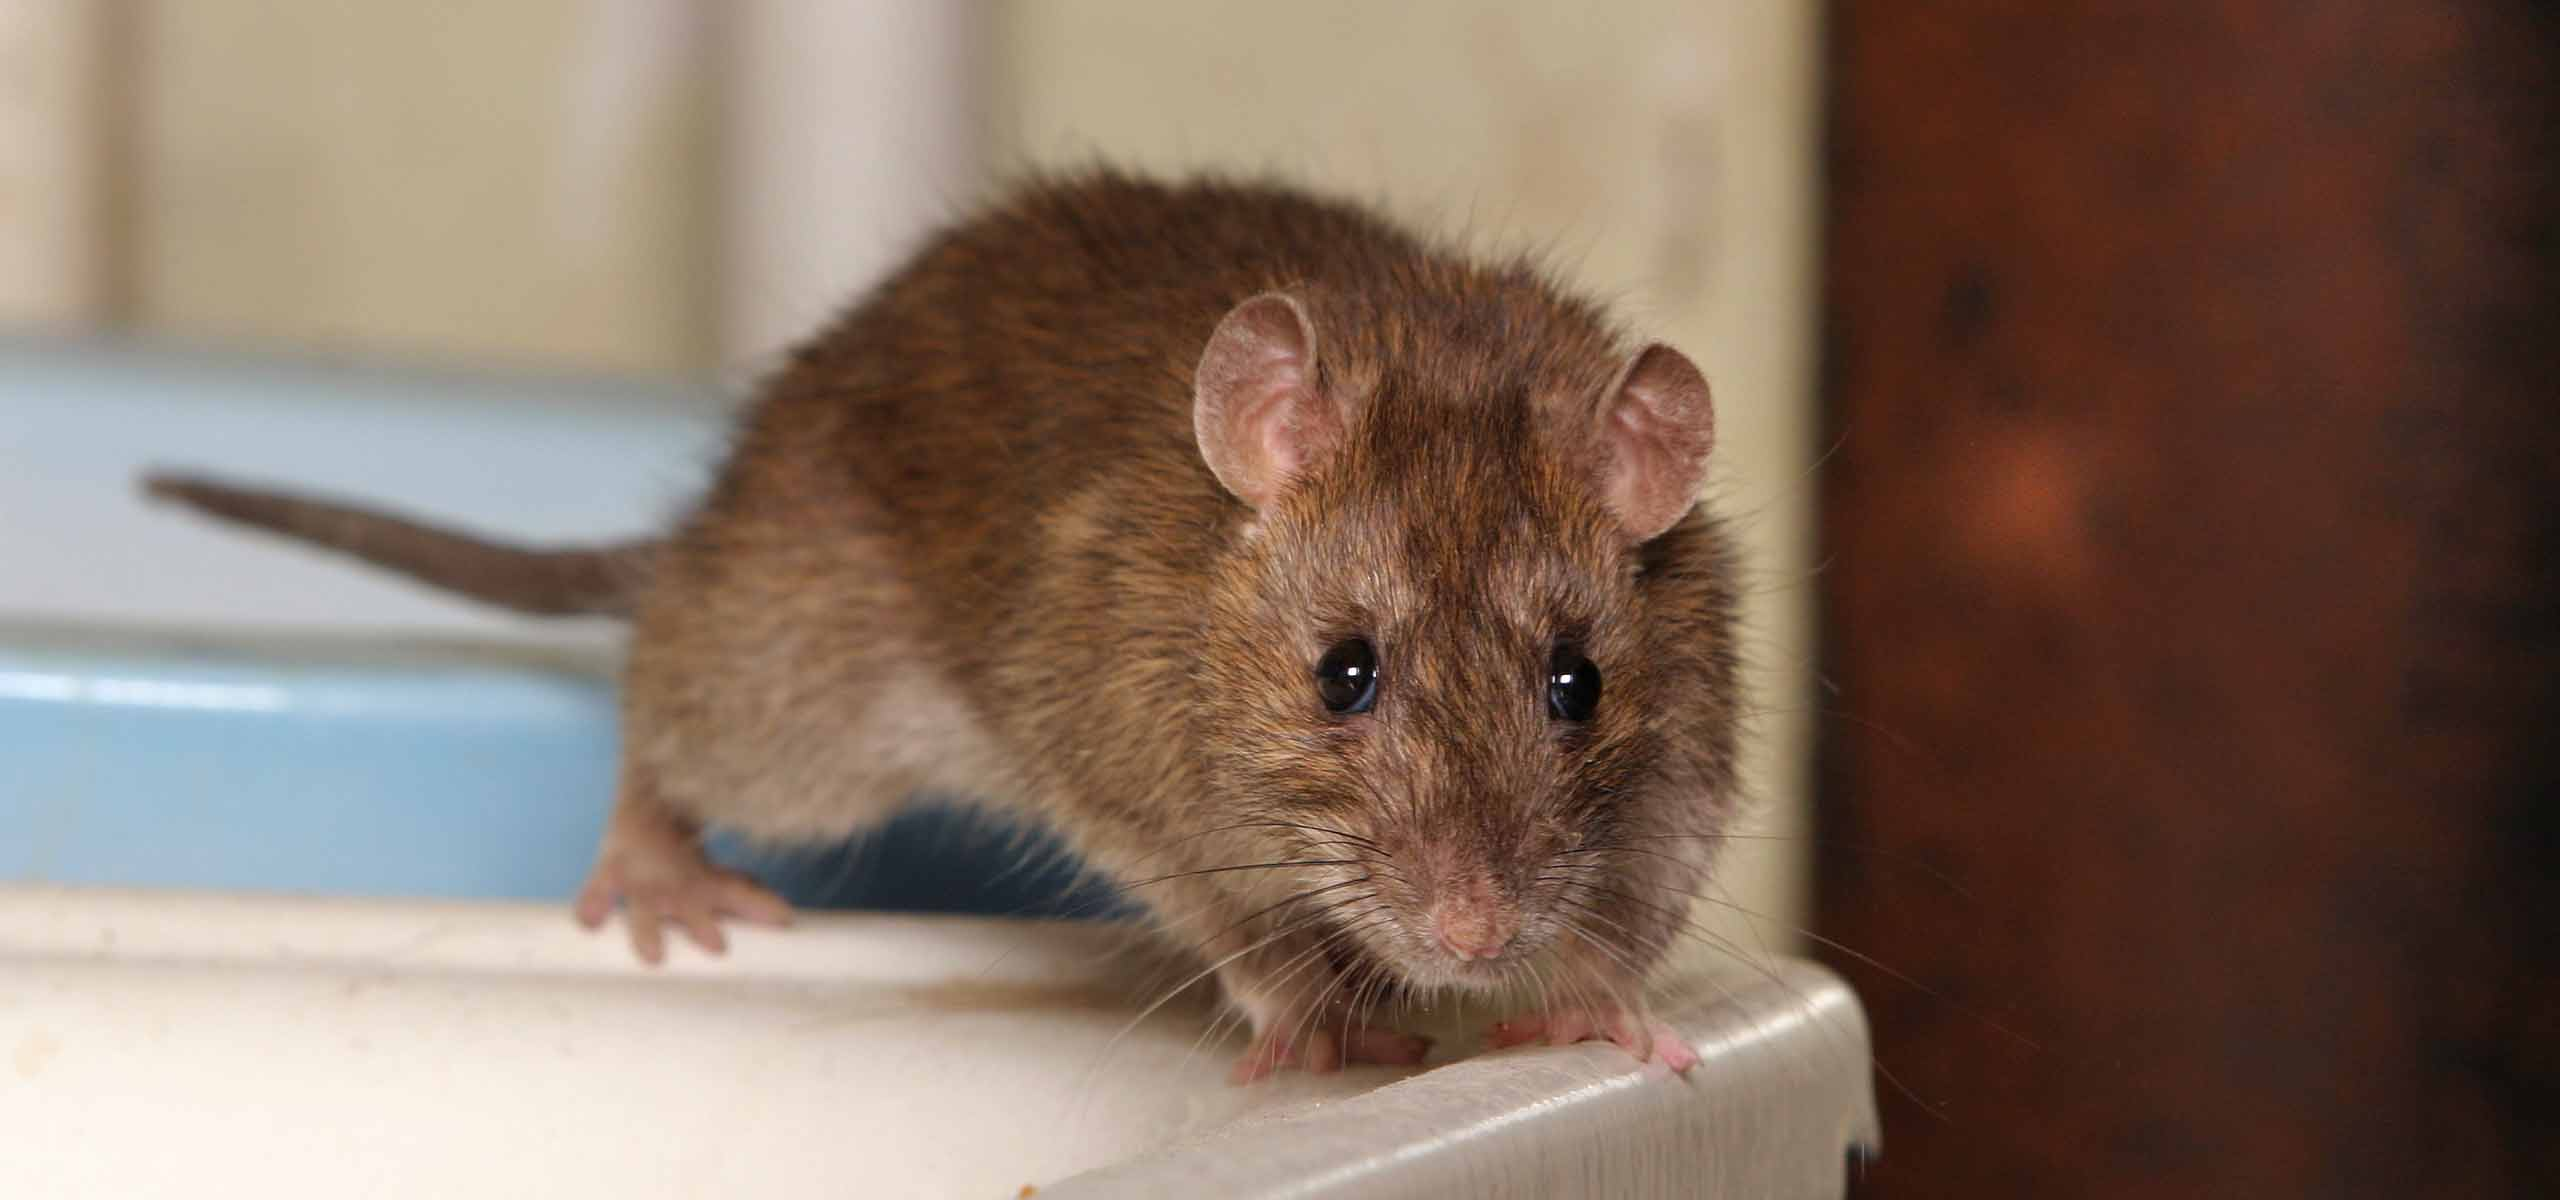 Rodent Exterminator | Rodent Control Company | Black Pest | Charlotte